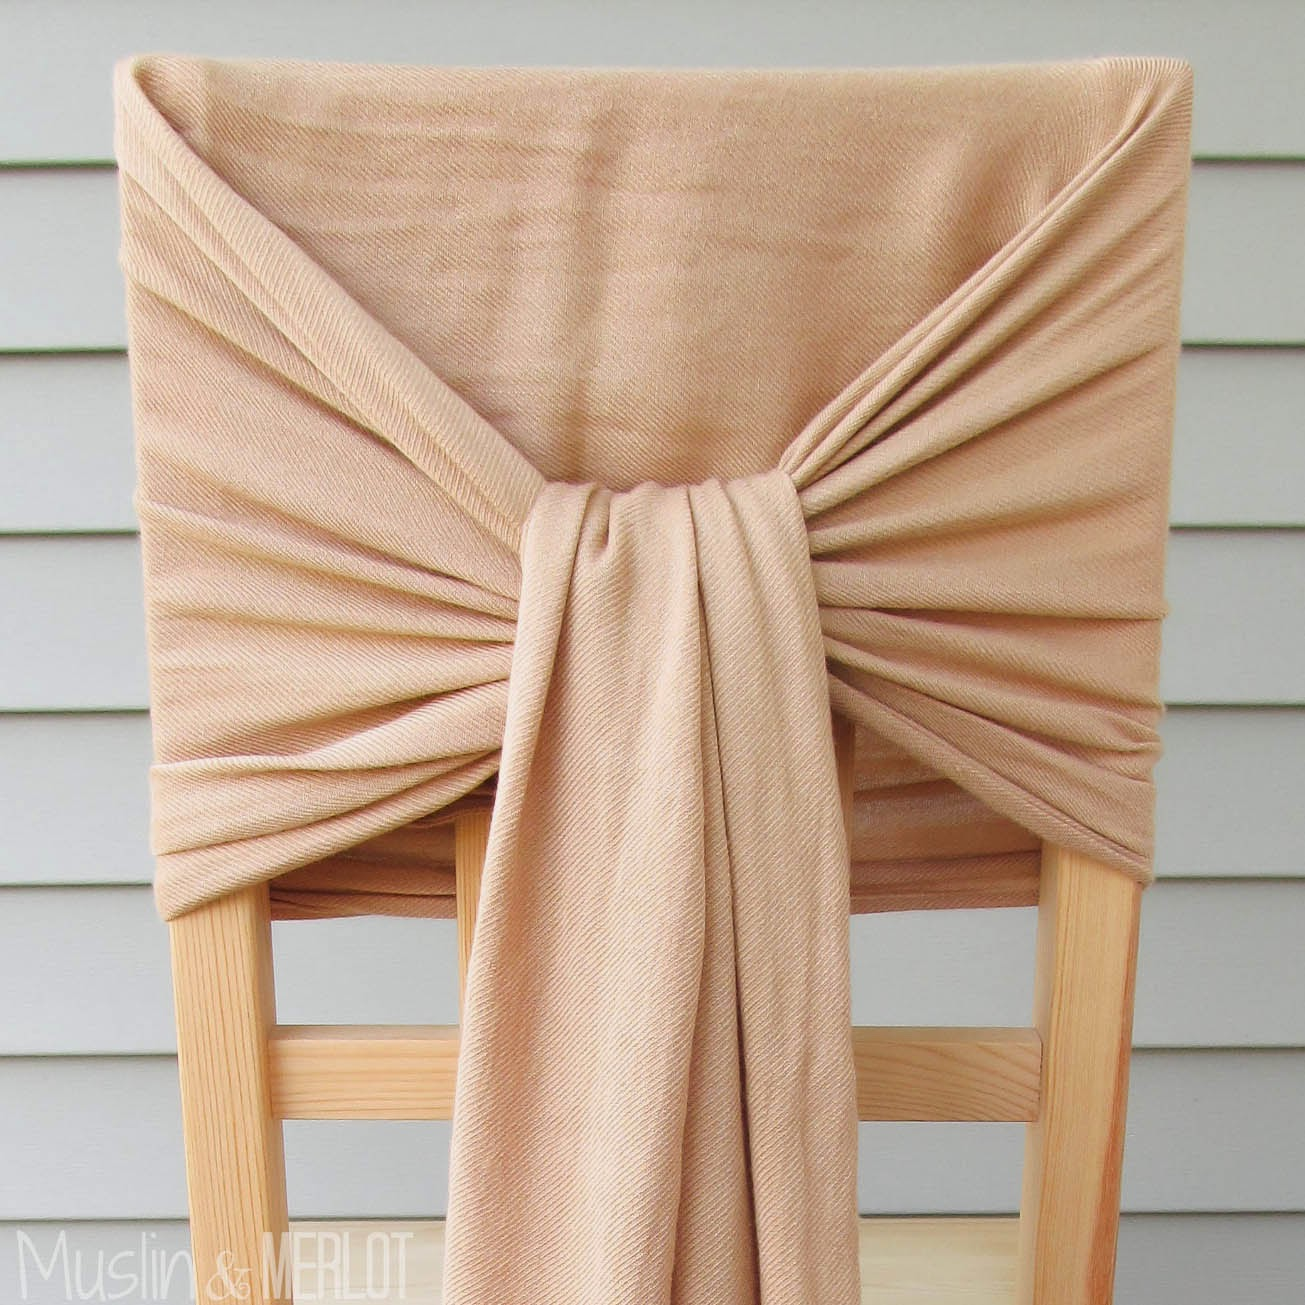 how to make easy chair covers for wedding folding types decorate chairs with scarves muslin and merlot you might also like